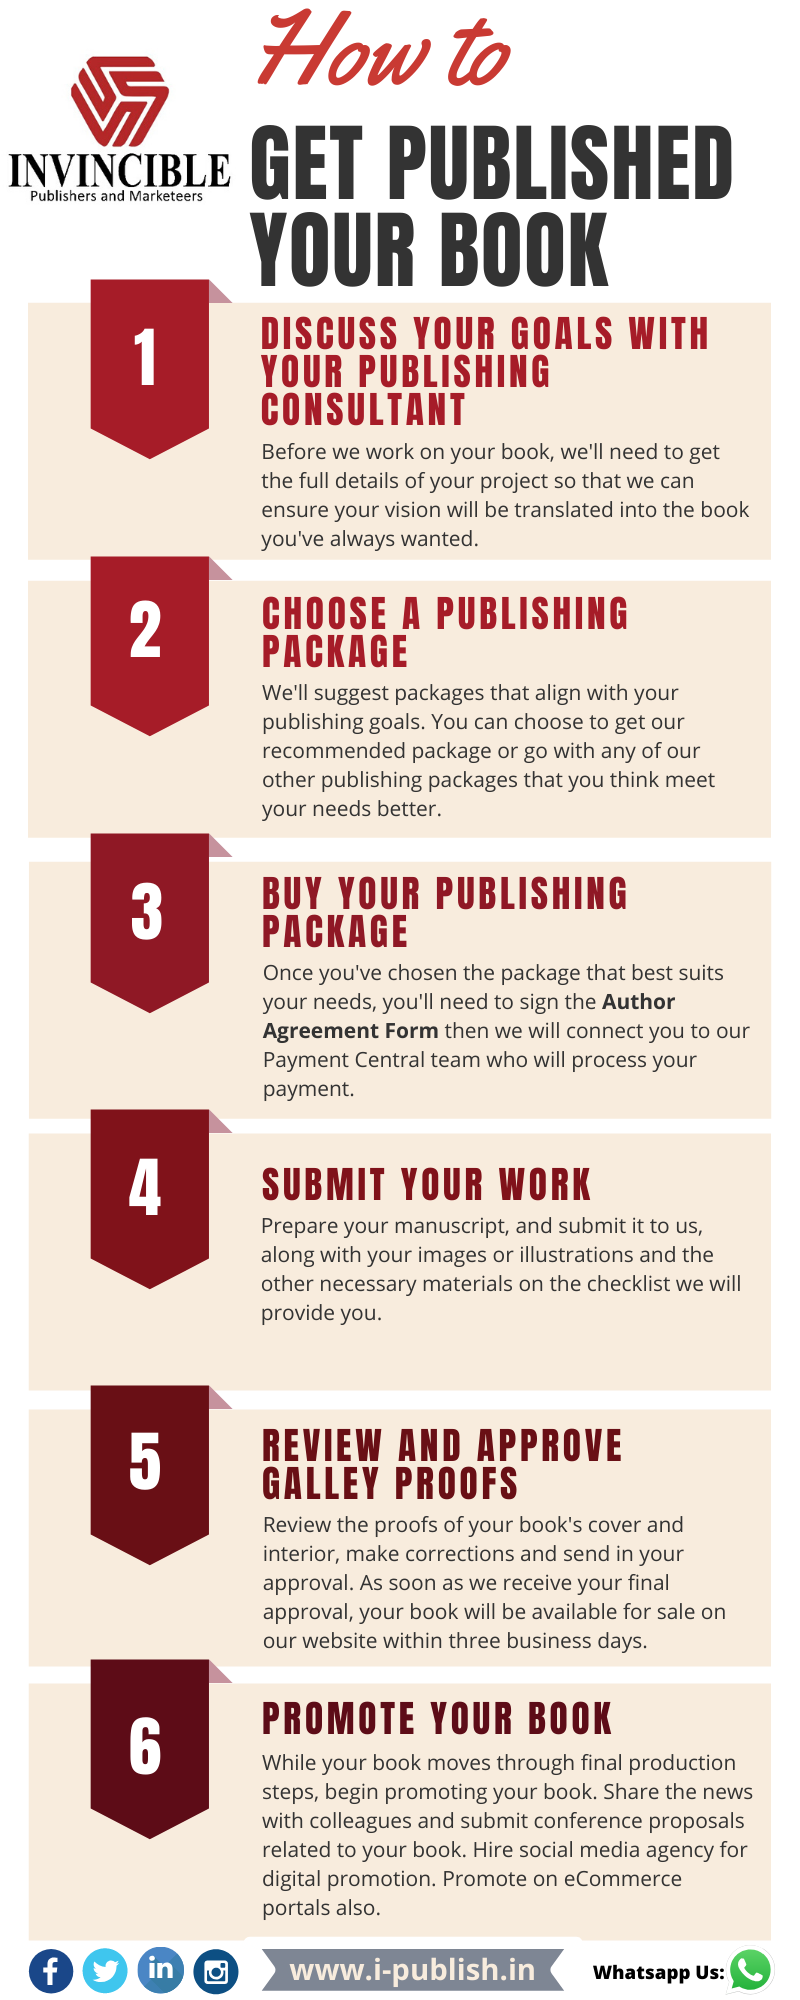 Steps of How to Get Published Your Book with Invincible Publishers?